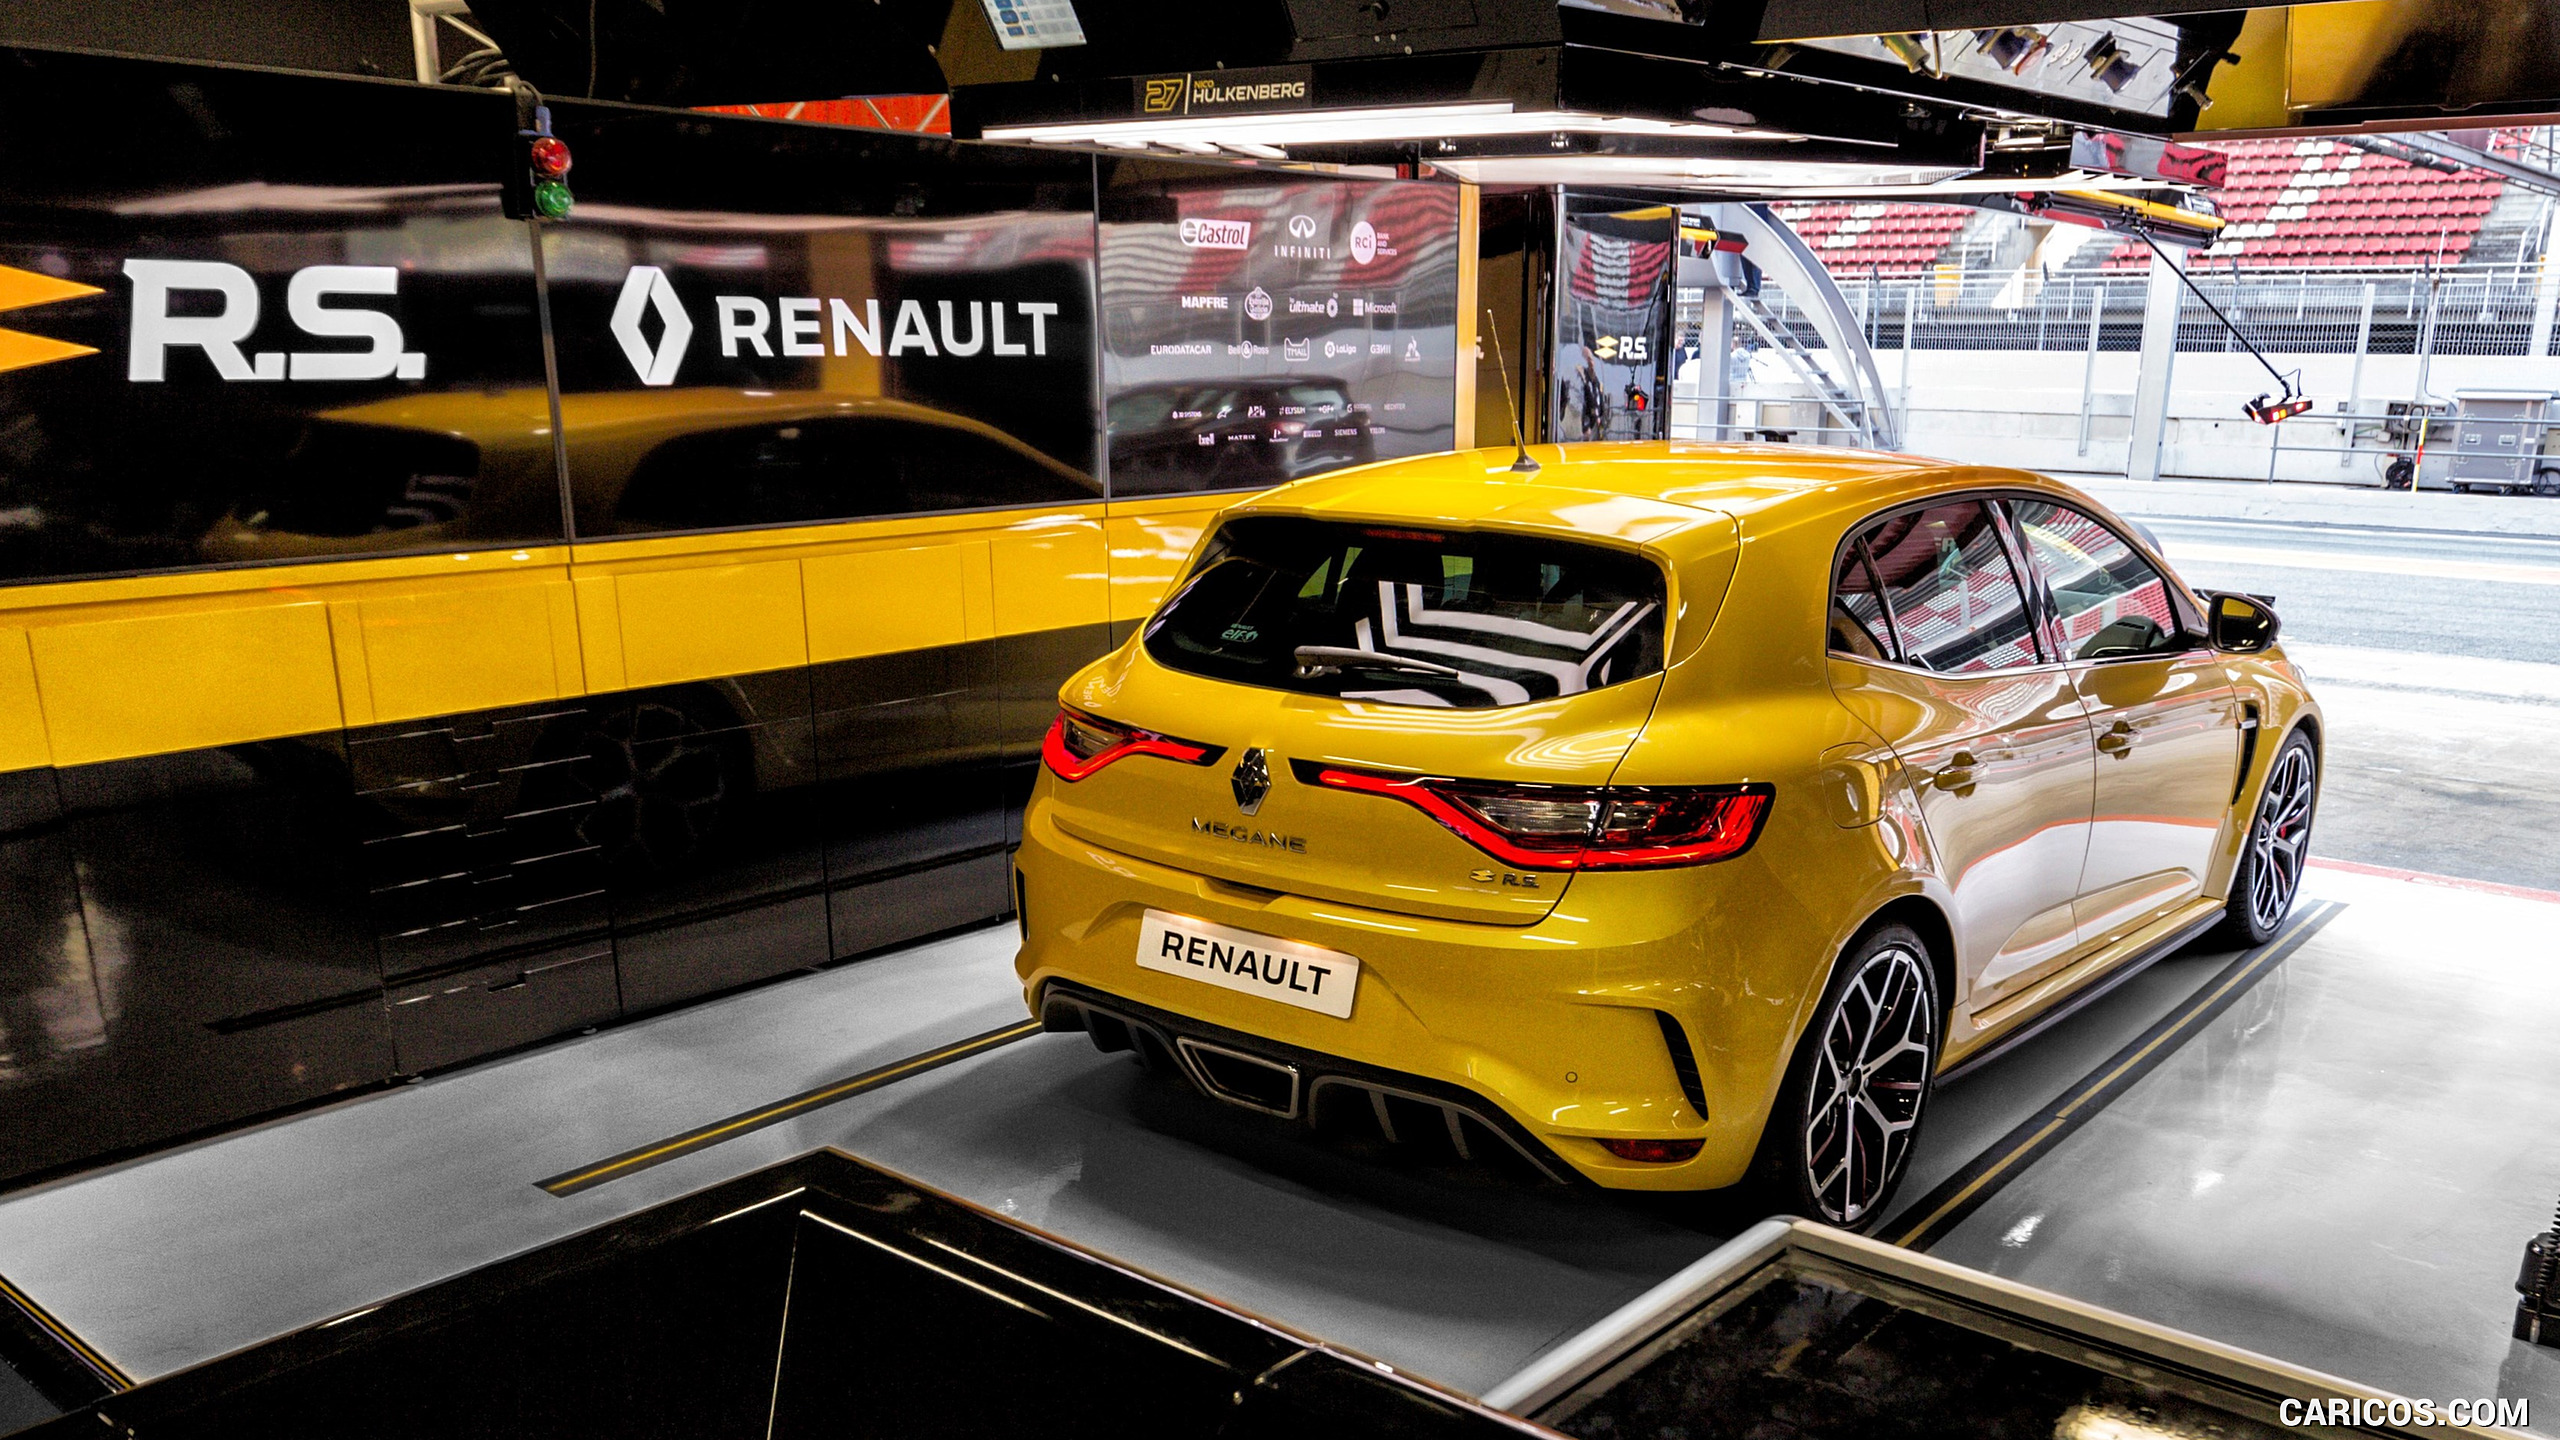 2560x1440 - Renault RS Wallpapers 21